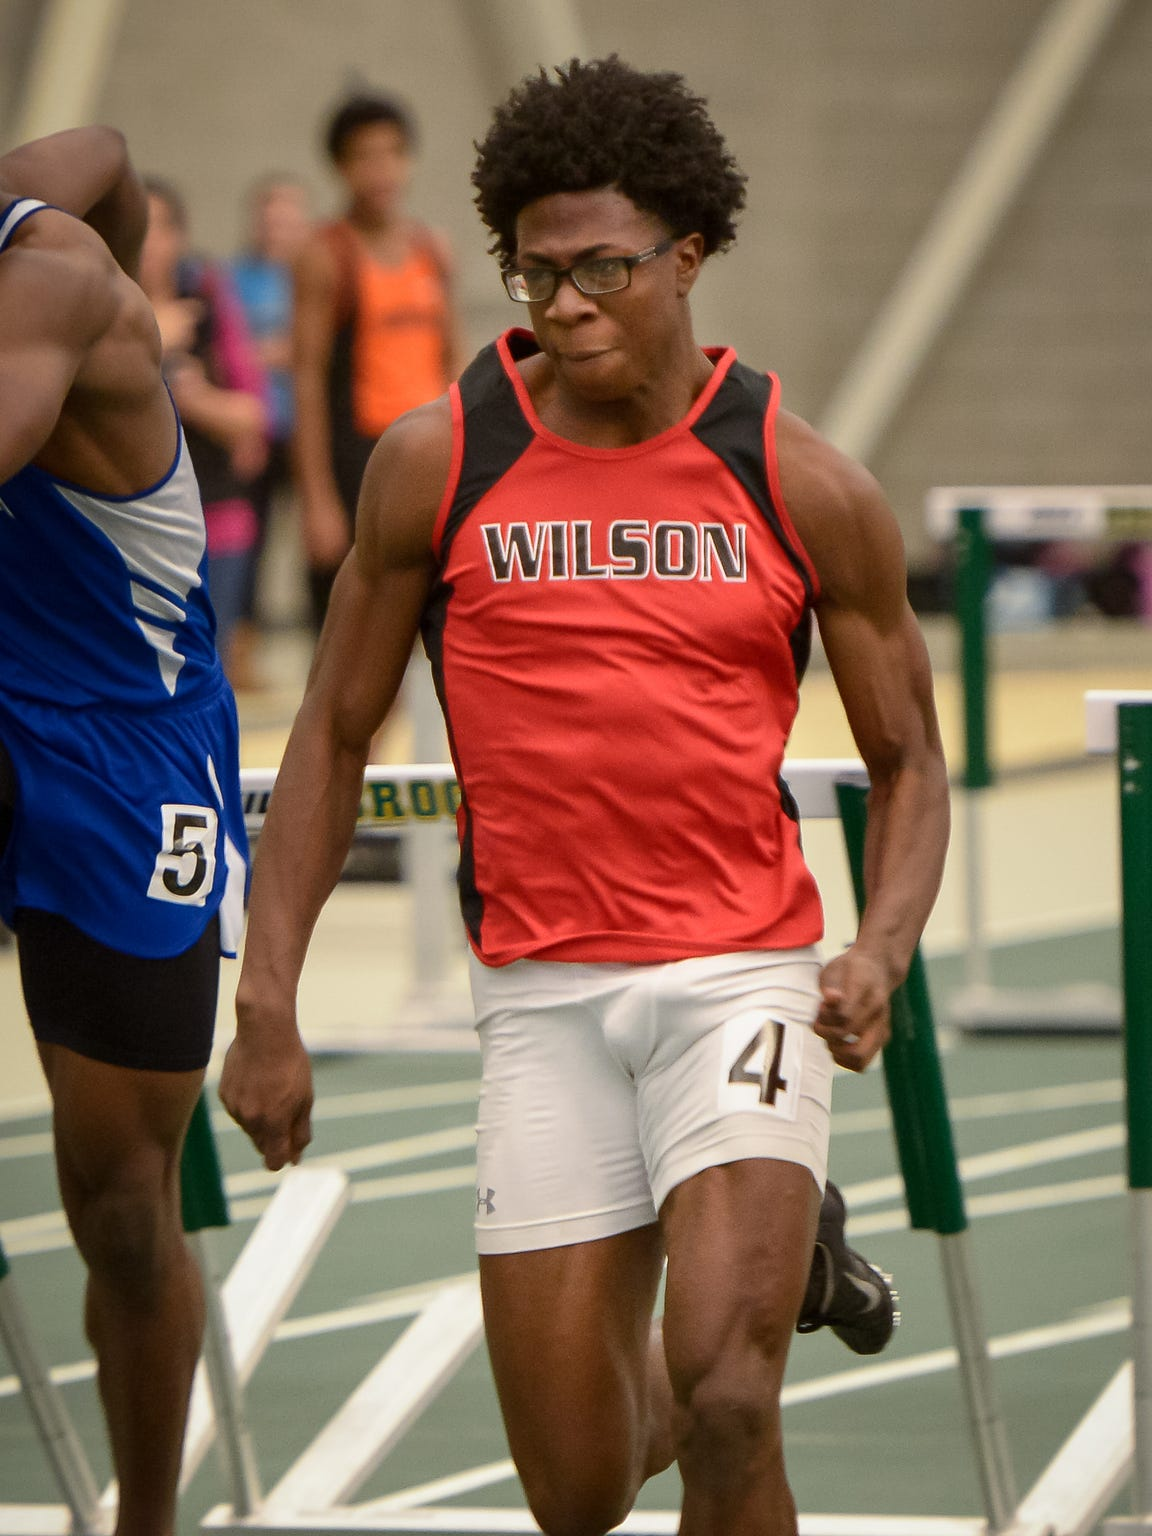 Kelly Brown of Wilson High School competes in his winning run of the 55 hurdles in 7.7 seconds.